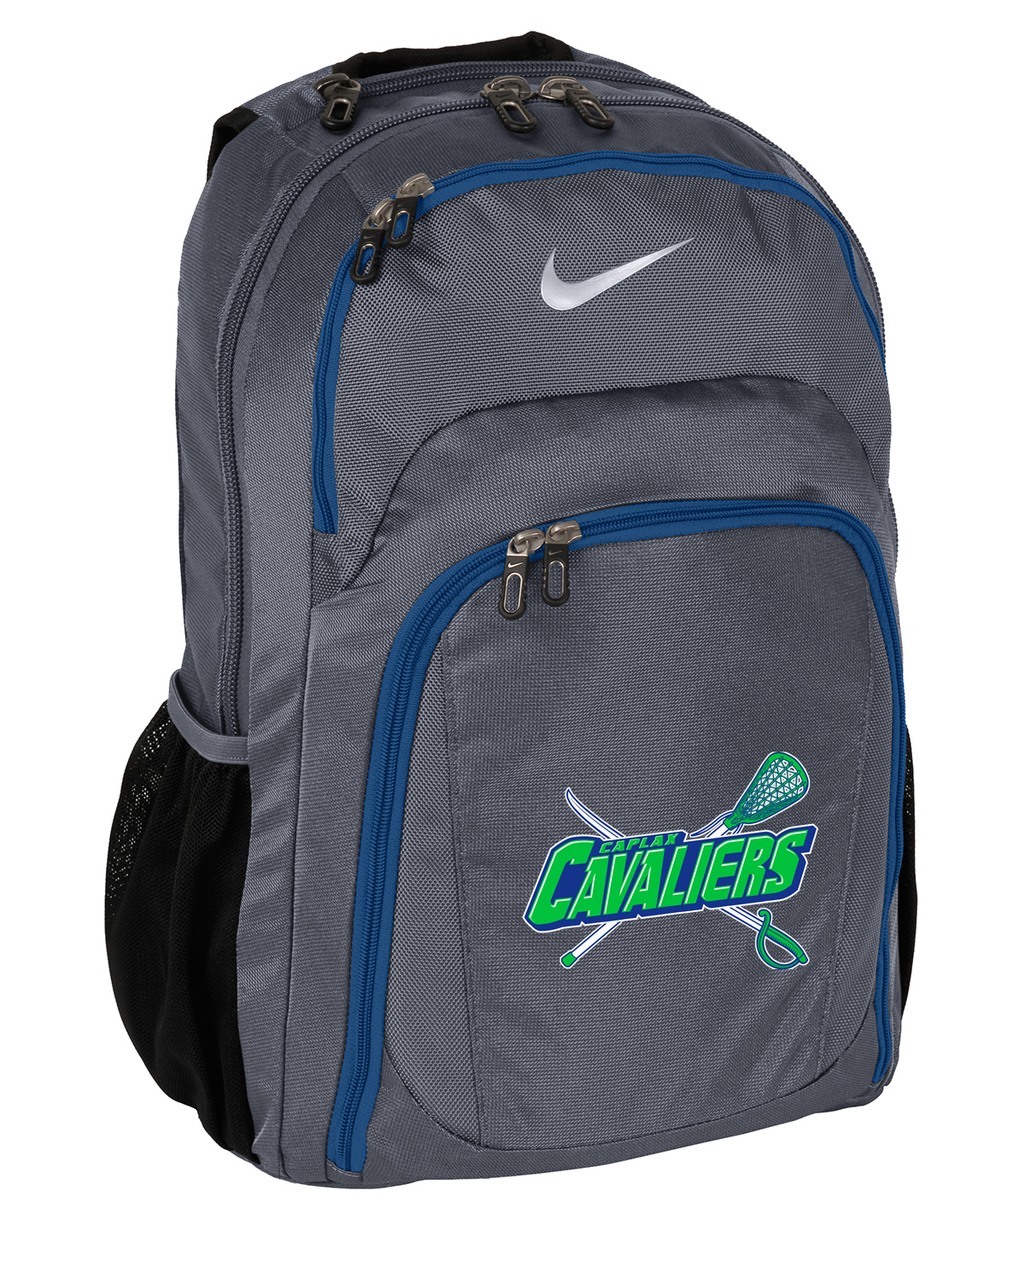 Cavaliers Lacrosse Nike Backpack